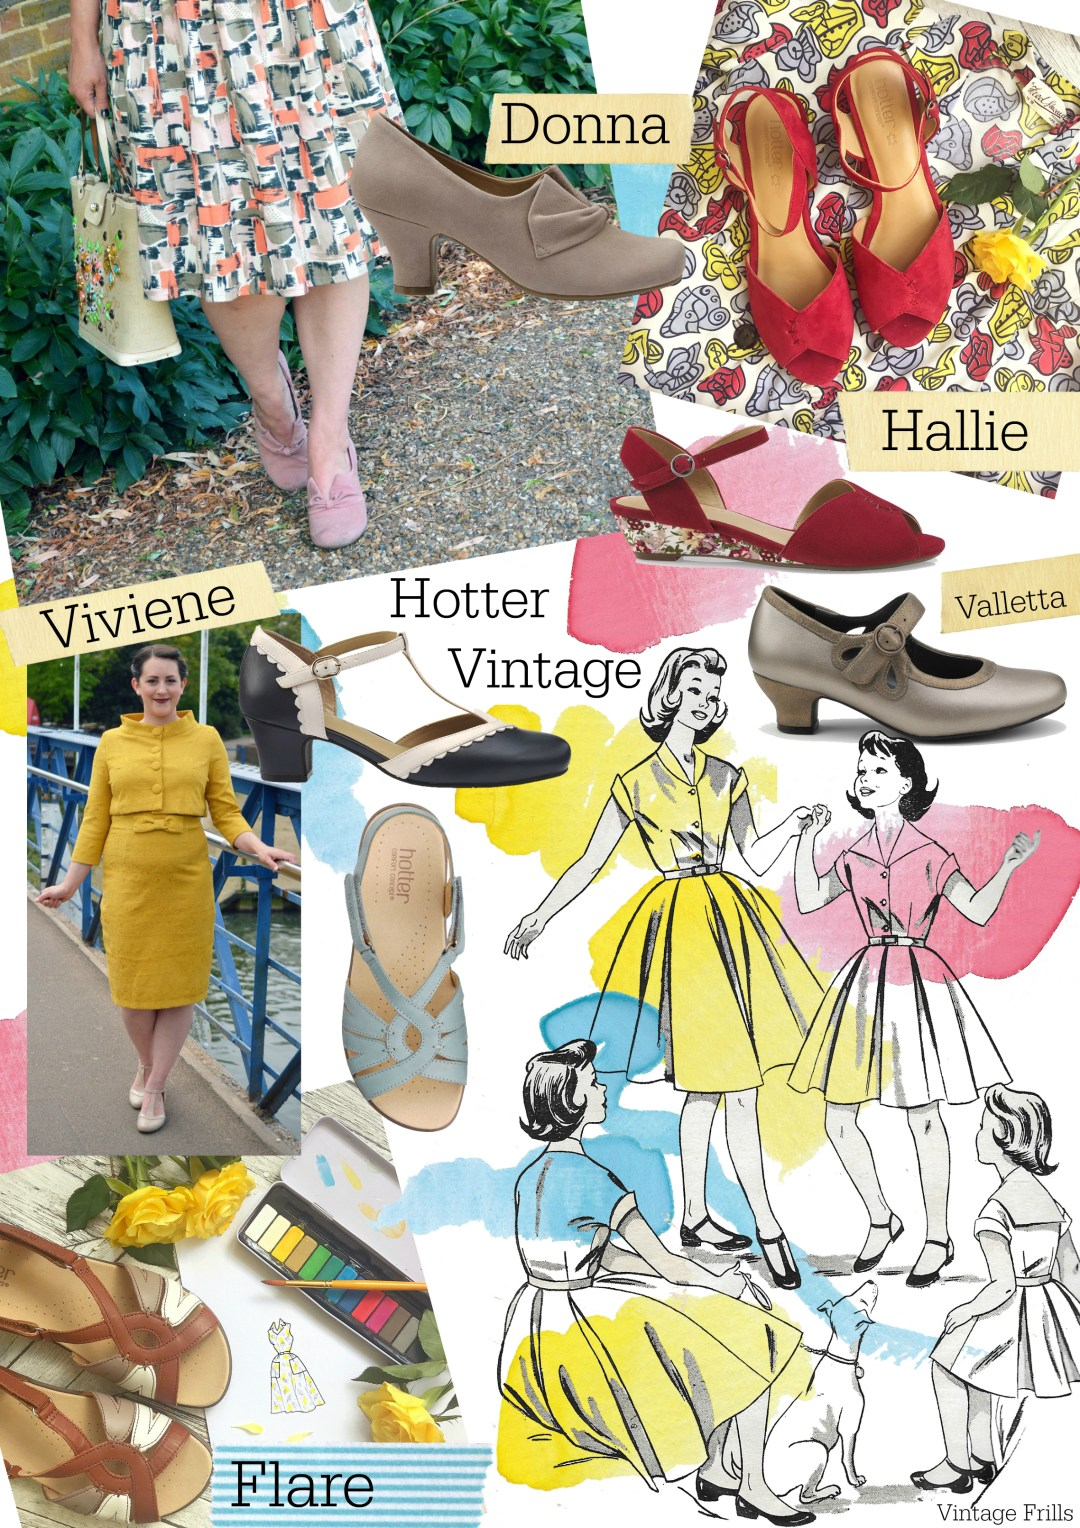 Vintage Style Shoes from Hotter Shoes